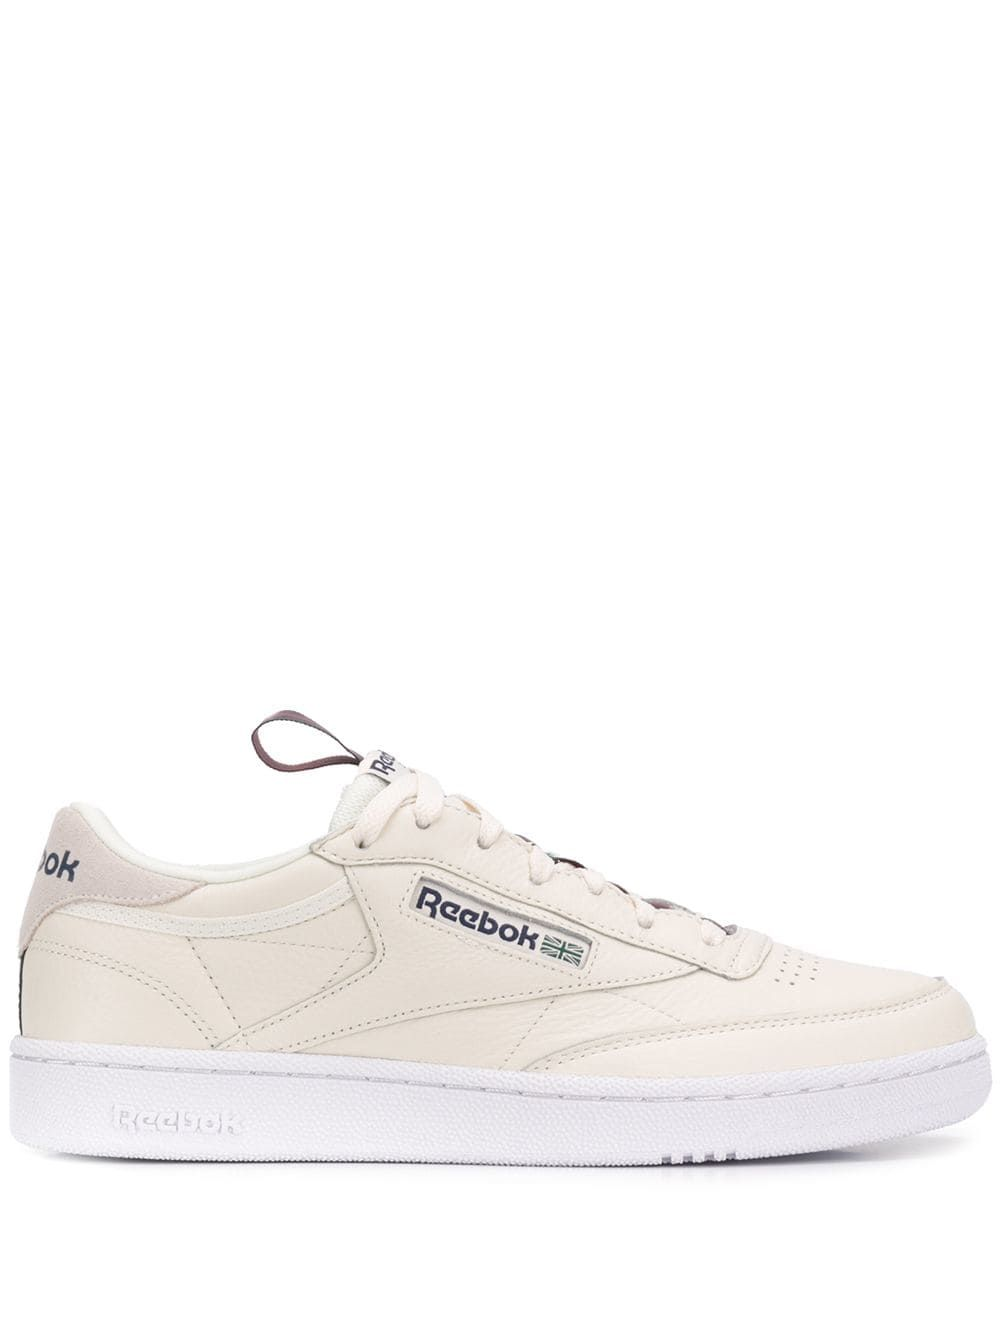 Reebok Classic Low Top Trainers In